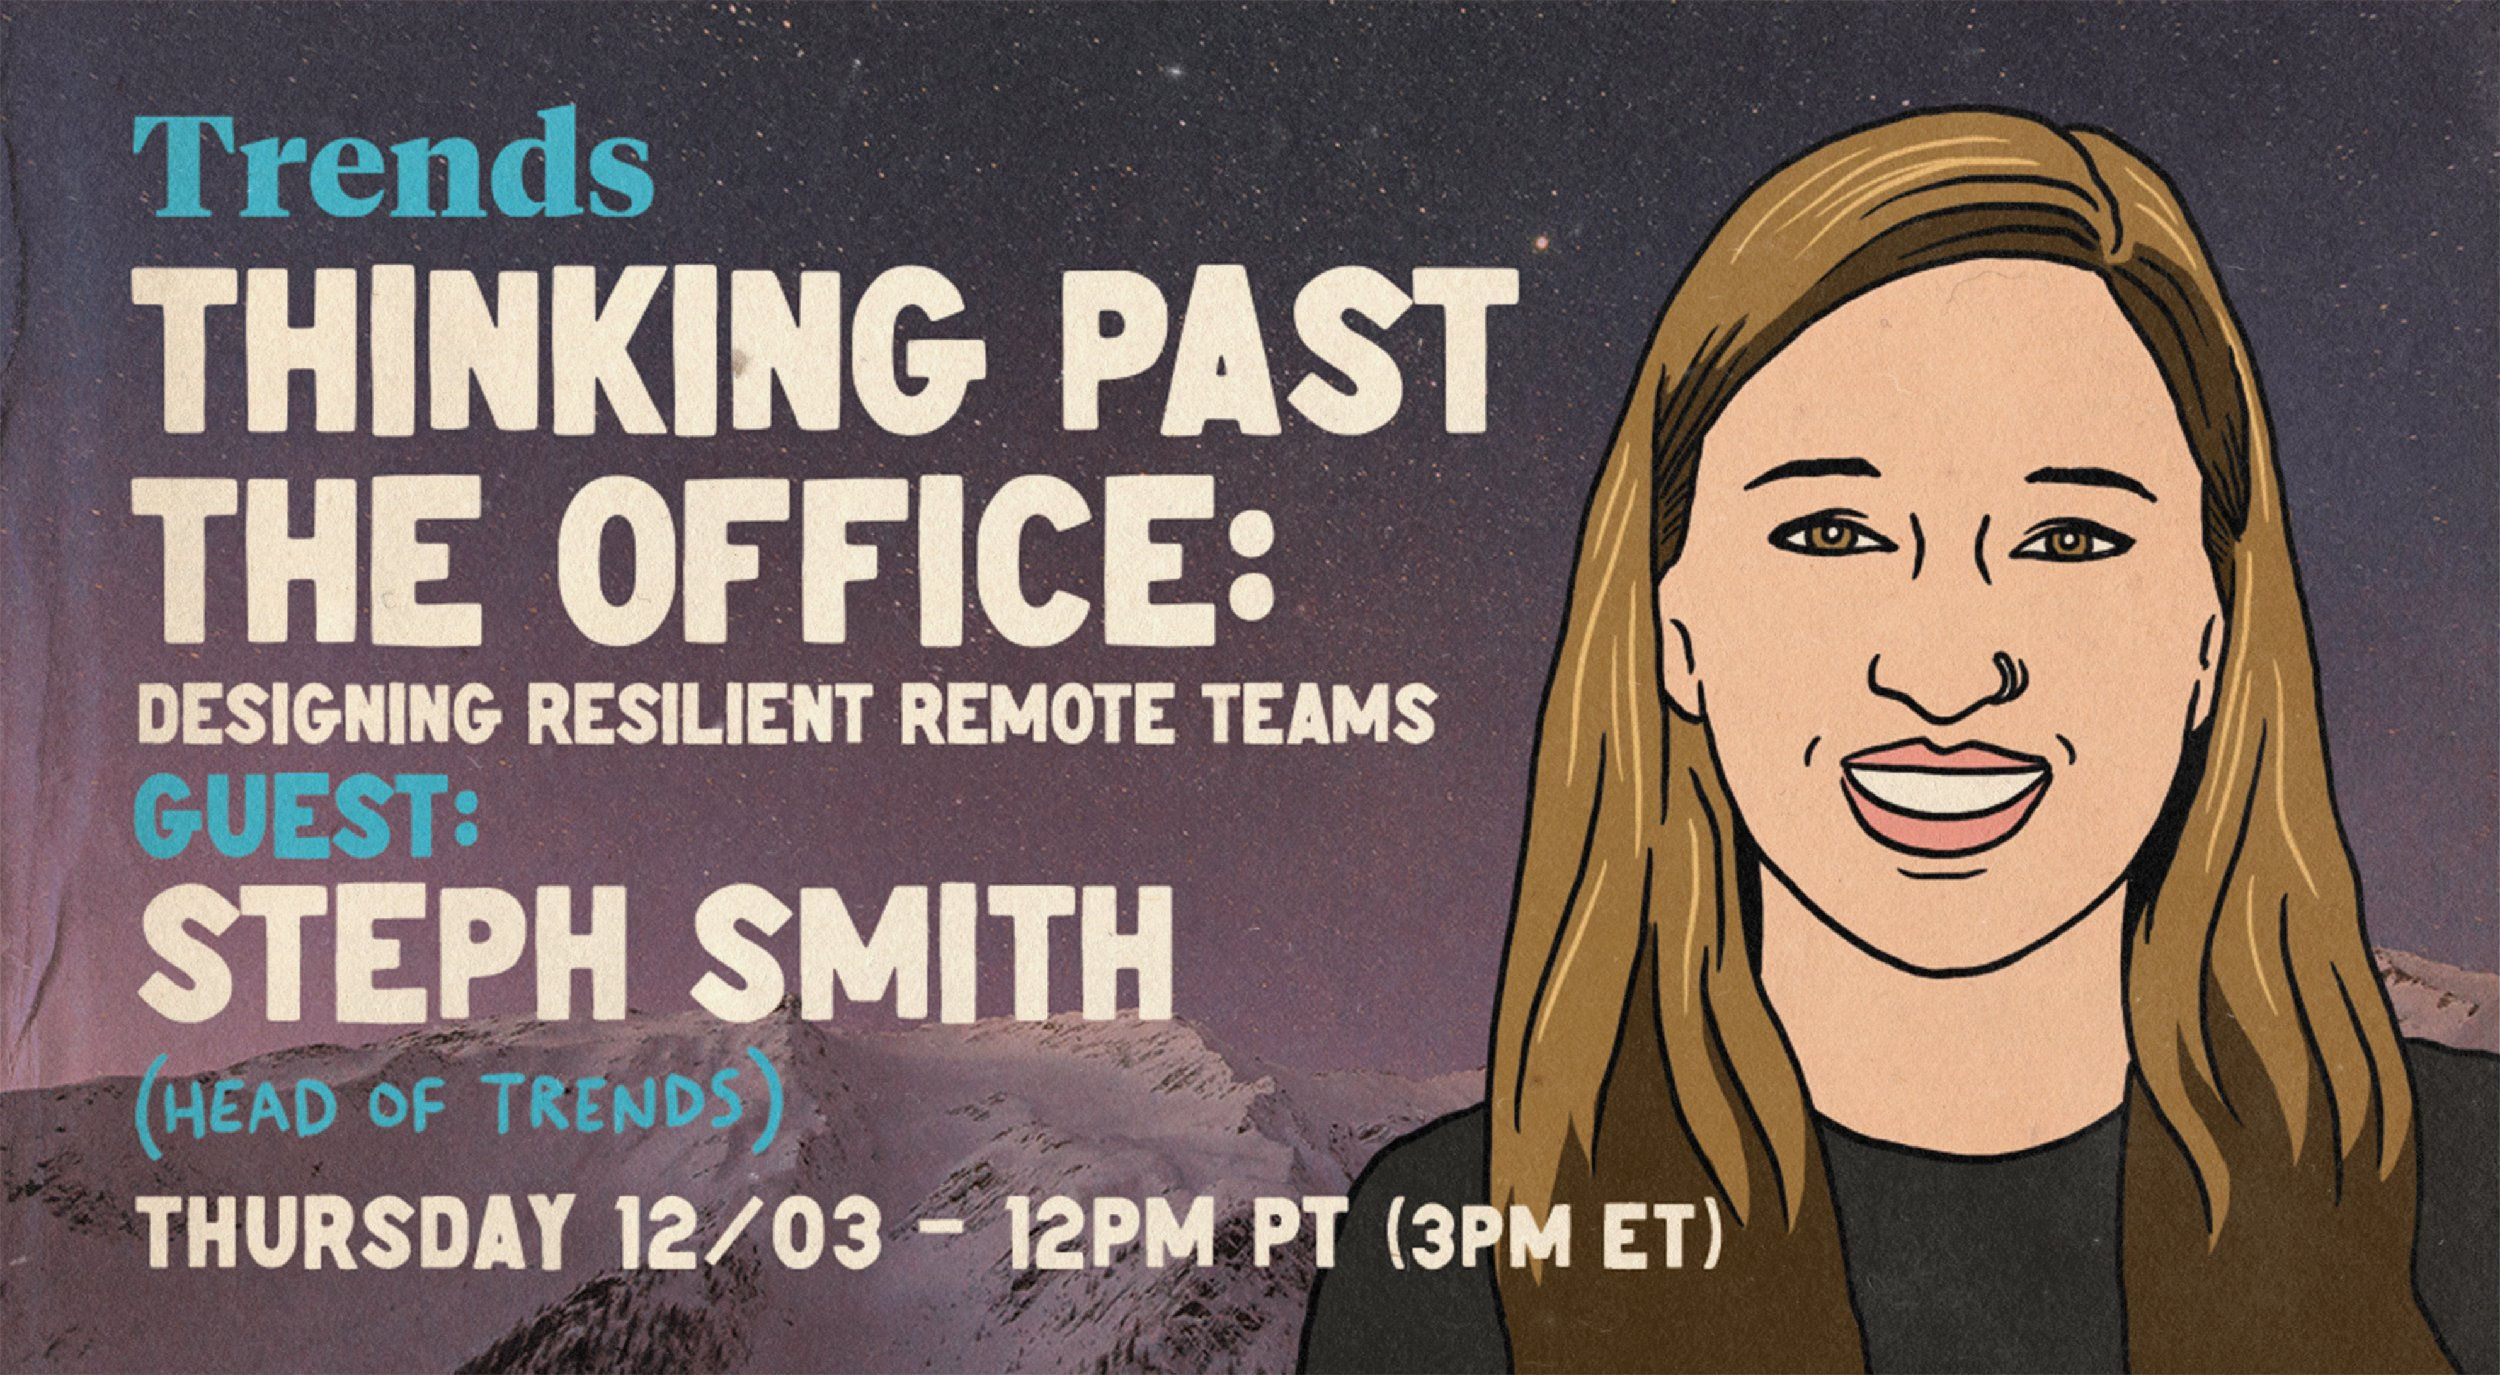 Thinking Past the Office: Designing Resilient Remote Teams with Steph Smith